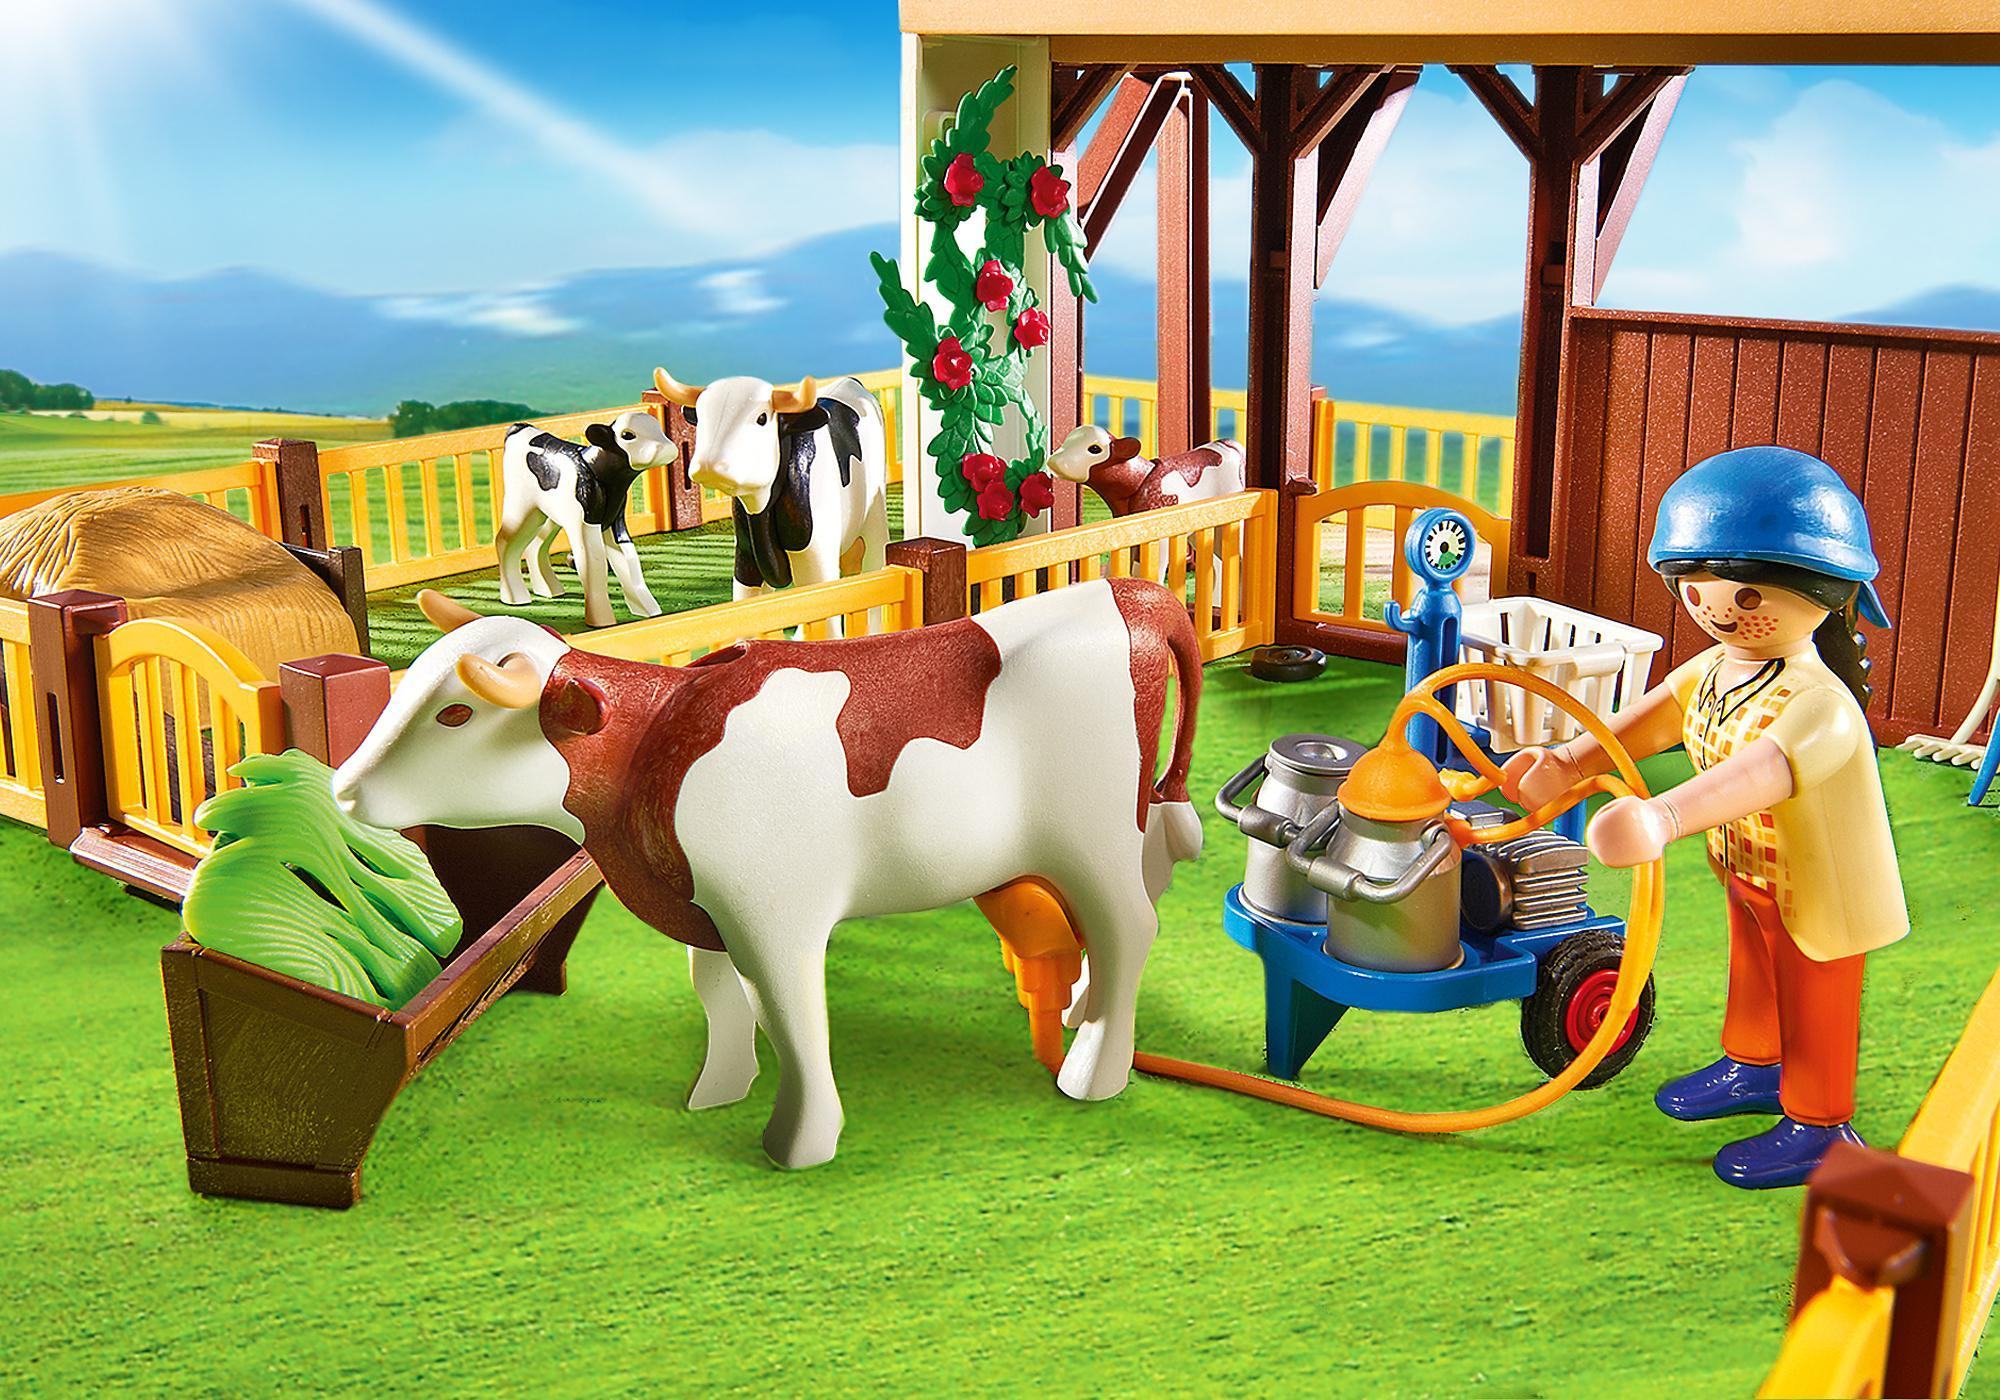 http://media.playmobil.com/i/playmobil/6120_product_extra1